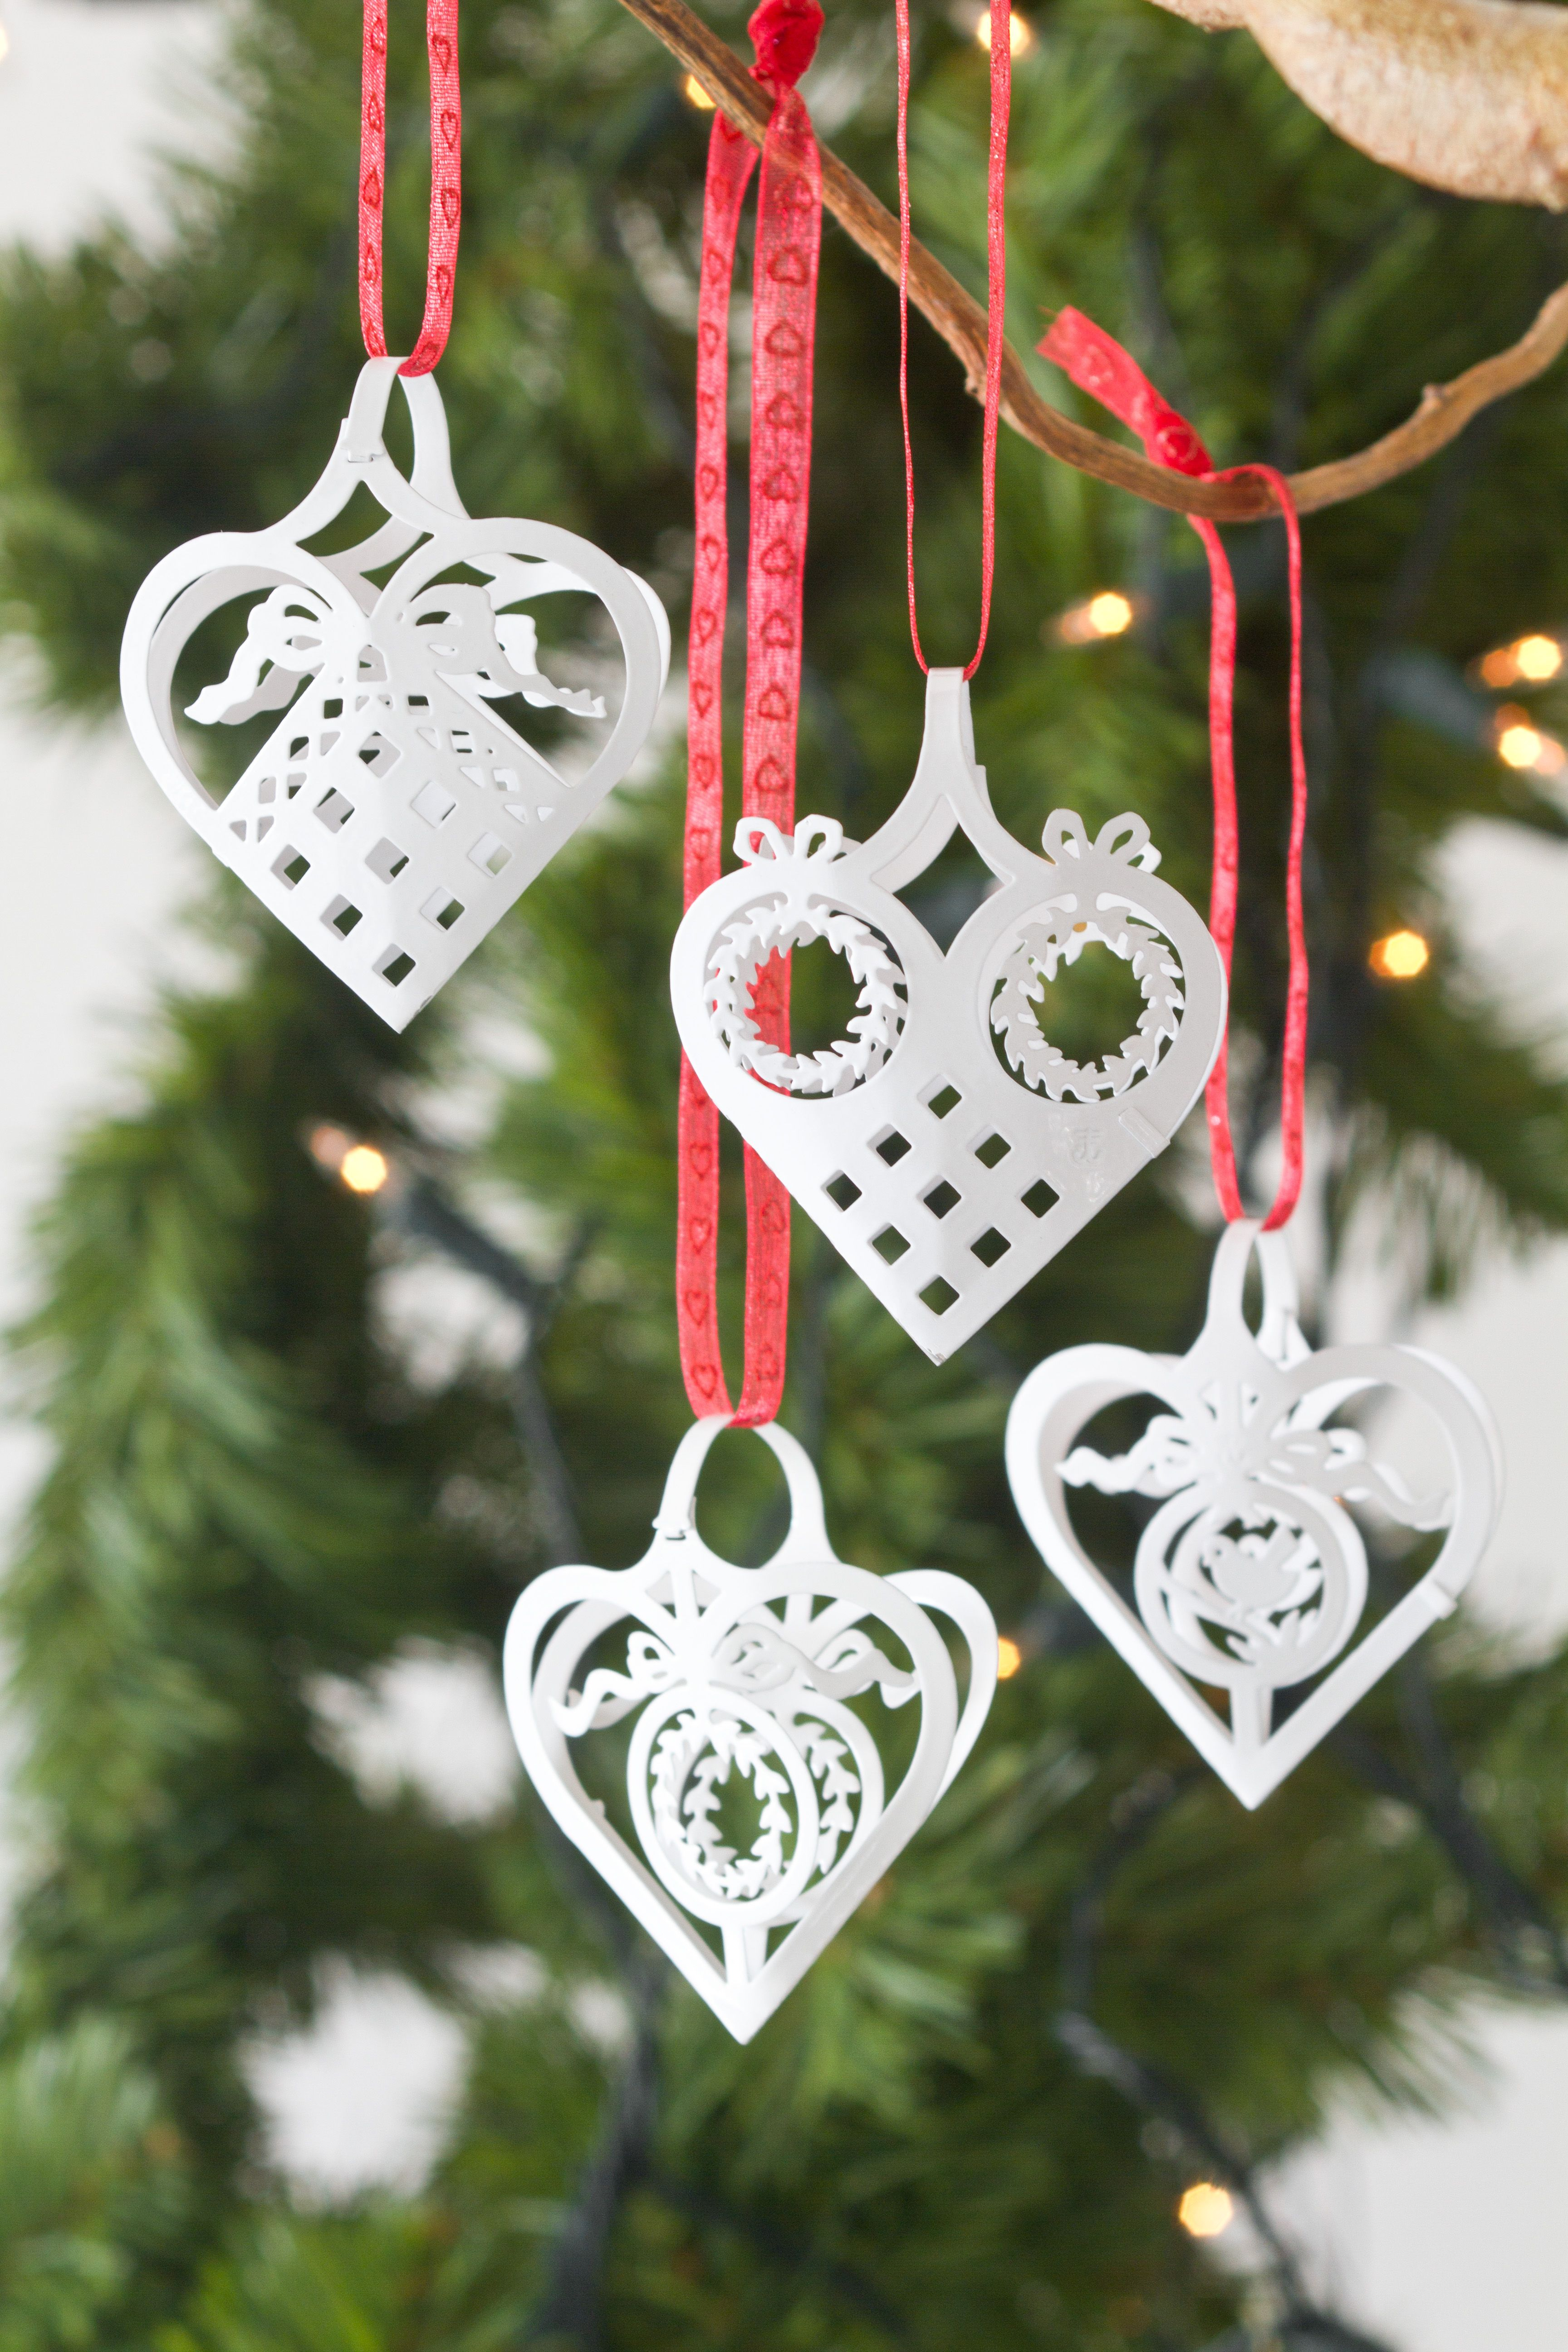 Paper Decorations Christmas 17 Best Images About Christmas On Pinterest Christmas Trees